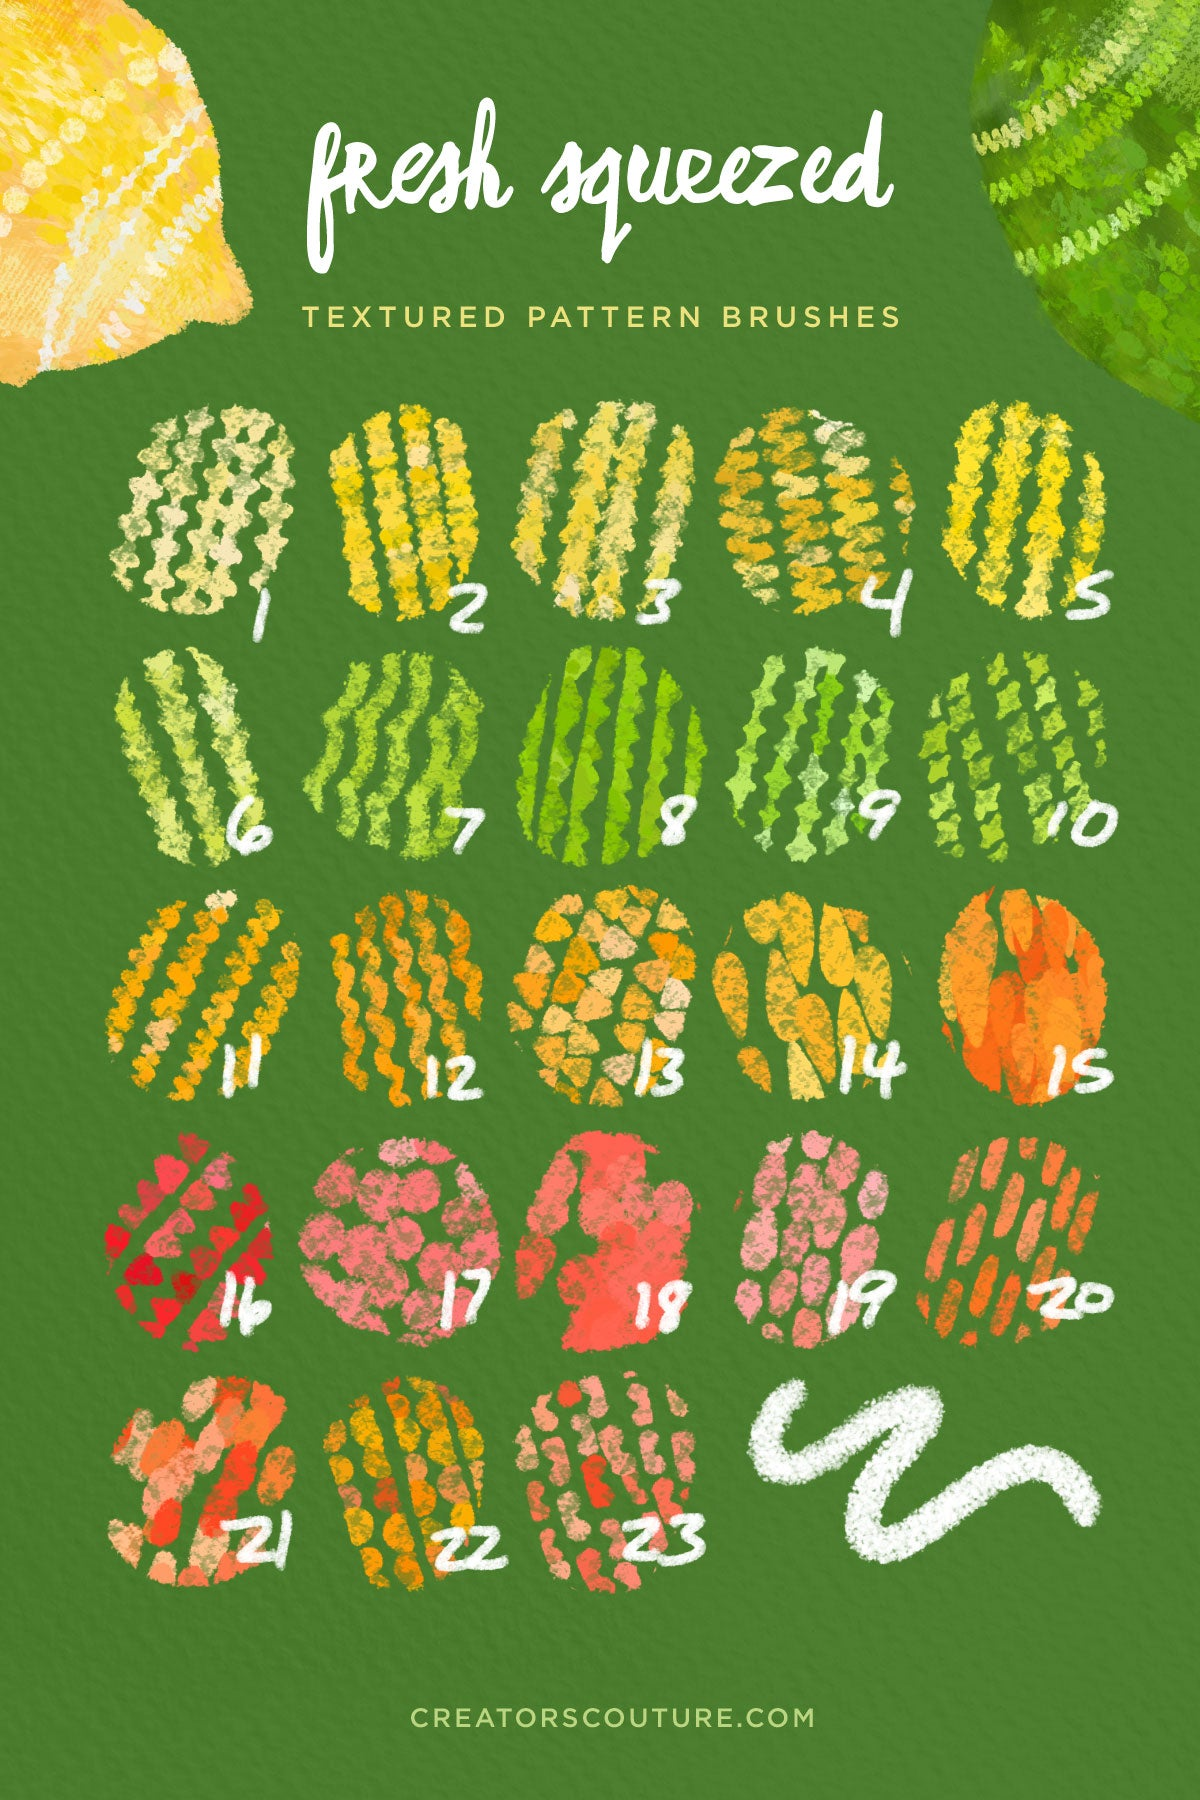 Citrus Illustration & Pattern Photoshop Brush & Color Palette Studio, textured pattern brushes